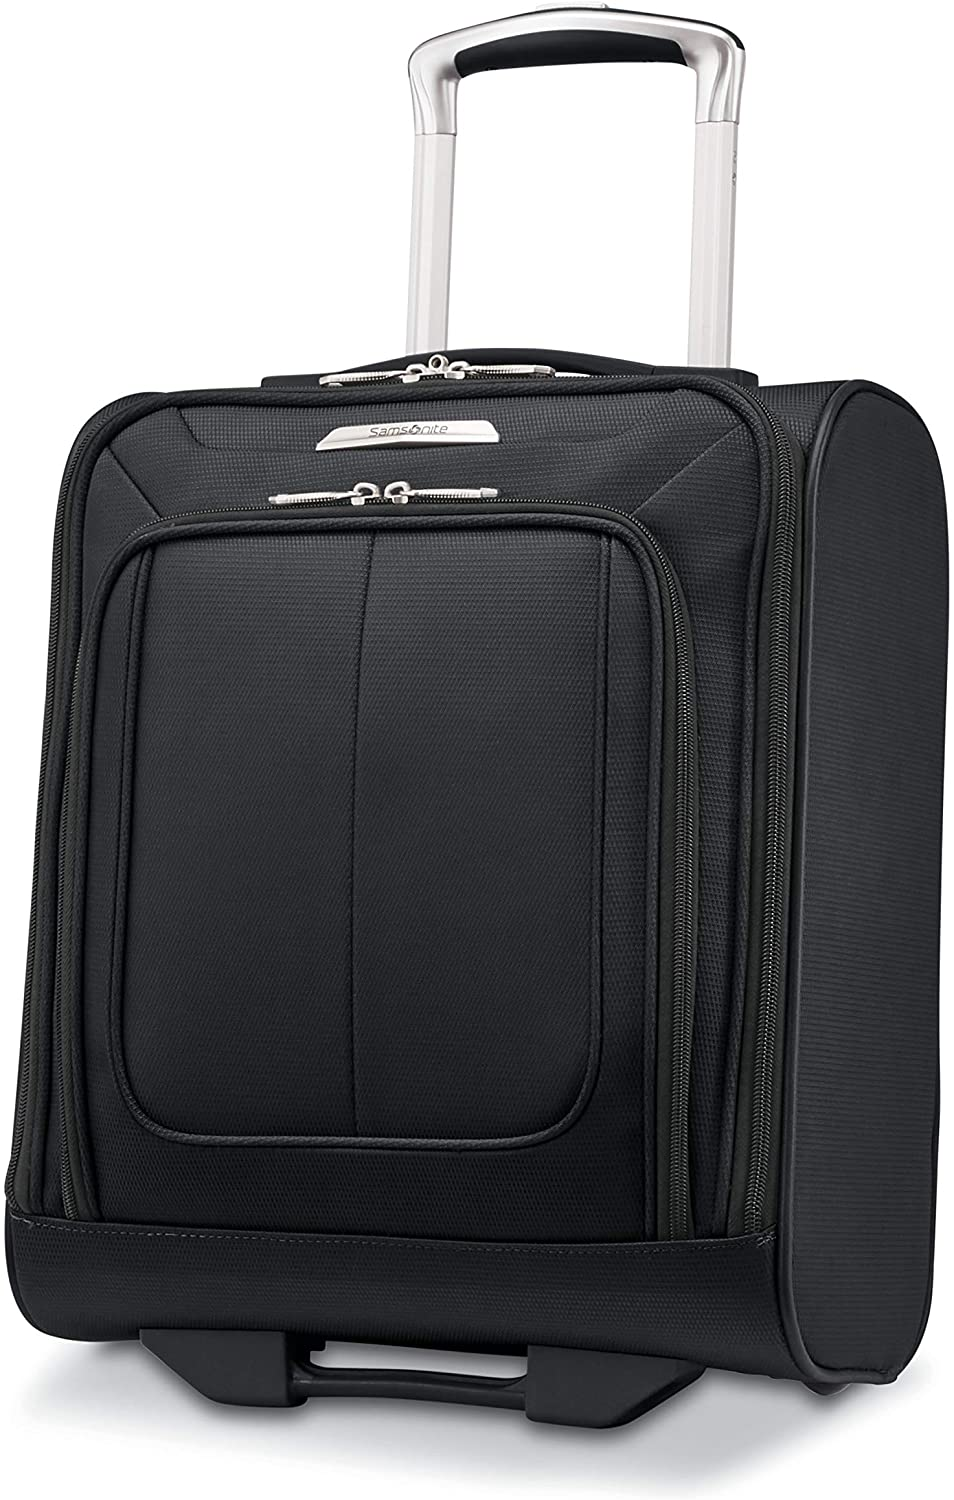 Samsonite Solyte DLX Softside Expandable Luggage with Spinner Wheels, Midnight Black, Underseater